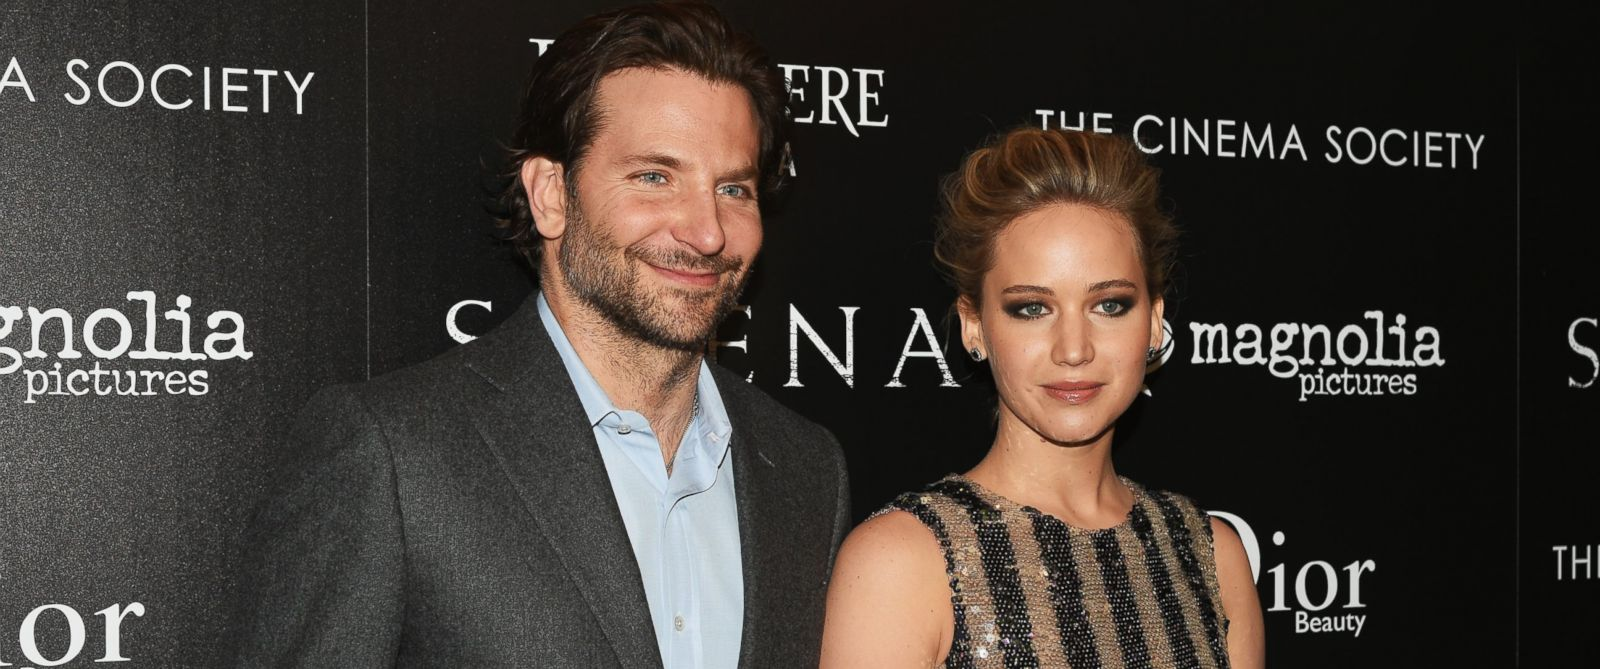 "PHOTO: Actors Bradley Cooper and Jennifer Lawrence attend a screening of ""Serena"" hosted by Magnolia Pictures and The Cinema Society with Dior Beauty in New York City, March 21, 2015."